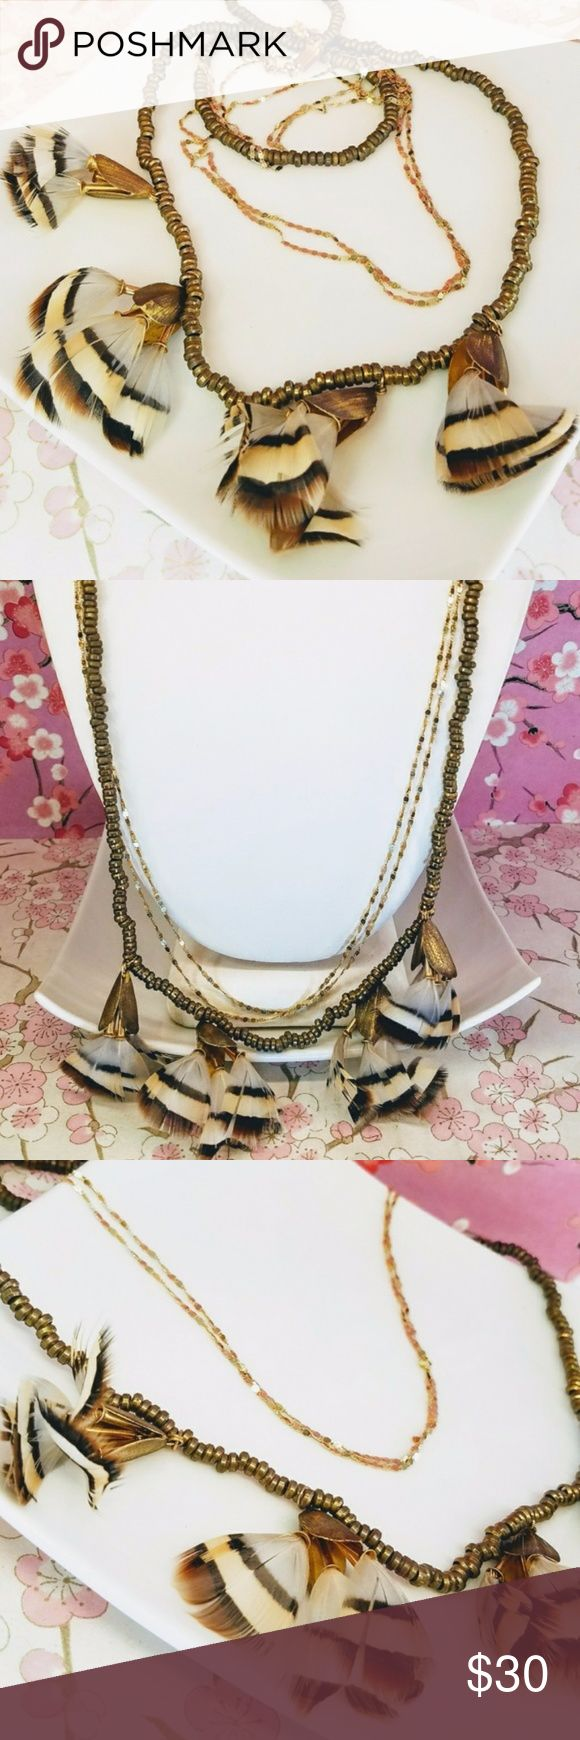 """Anthropologie feather triple gold chain necklace Anthropologie feather triple gold chain necklace. Brass rondelle chain and 2 gold chains. Triple feather in 4 bundles of brown beige tan stripe feathers in a brass leaf. Inner gold chain length is 22"""", outer brass chain 23"""". Feathers are 2"""" long. Great condition. Bohemian chic feel Anthropologie Jewelry Necklaces"""